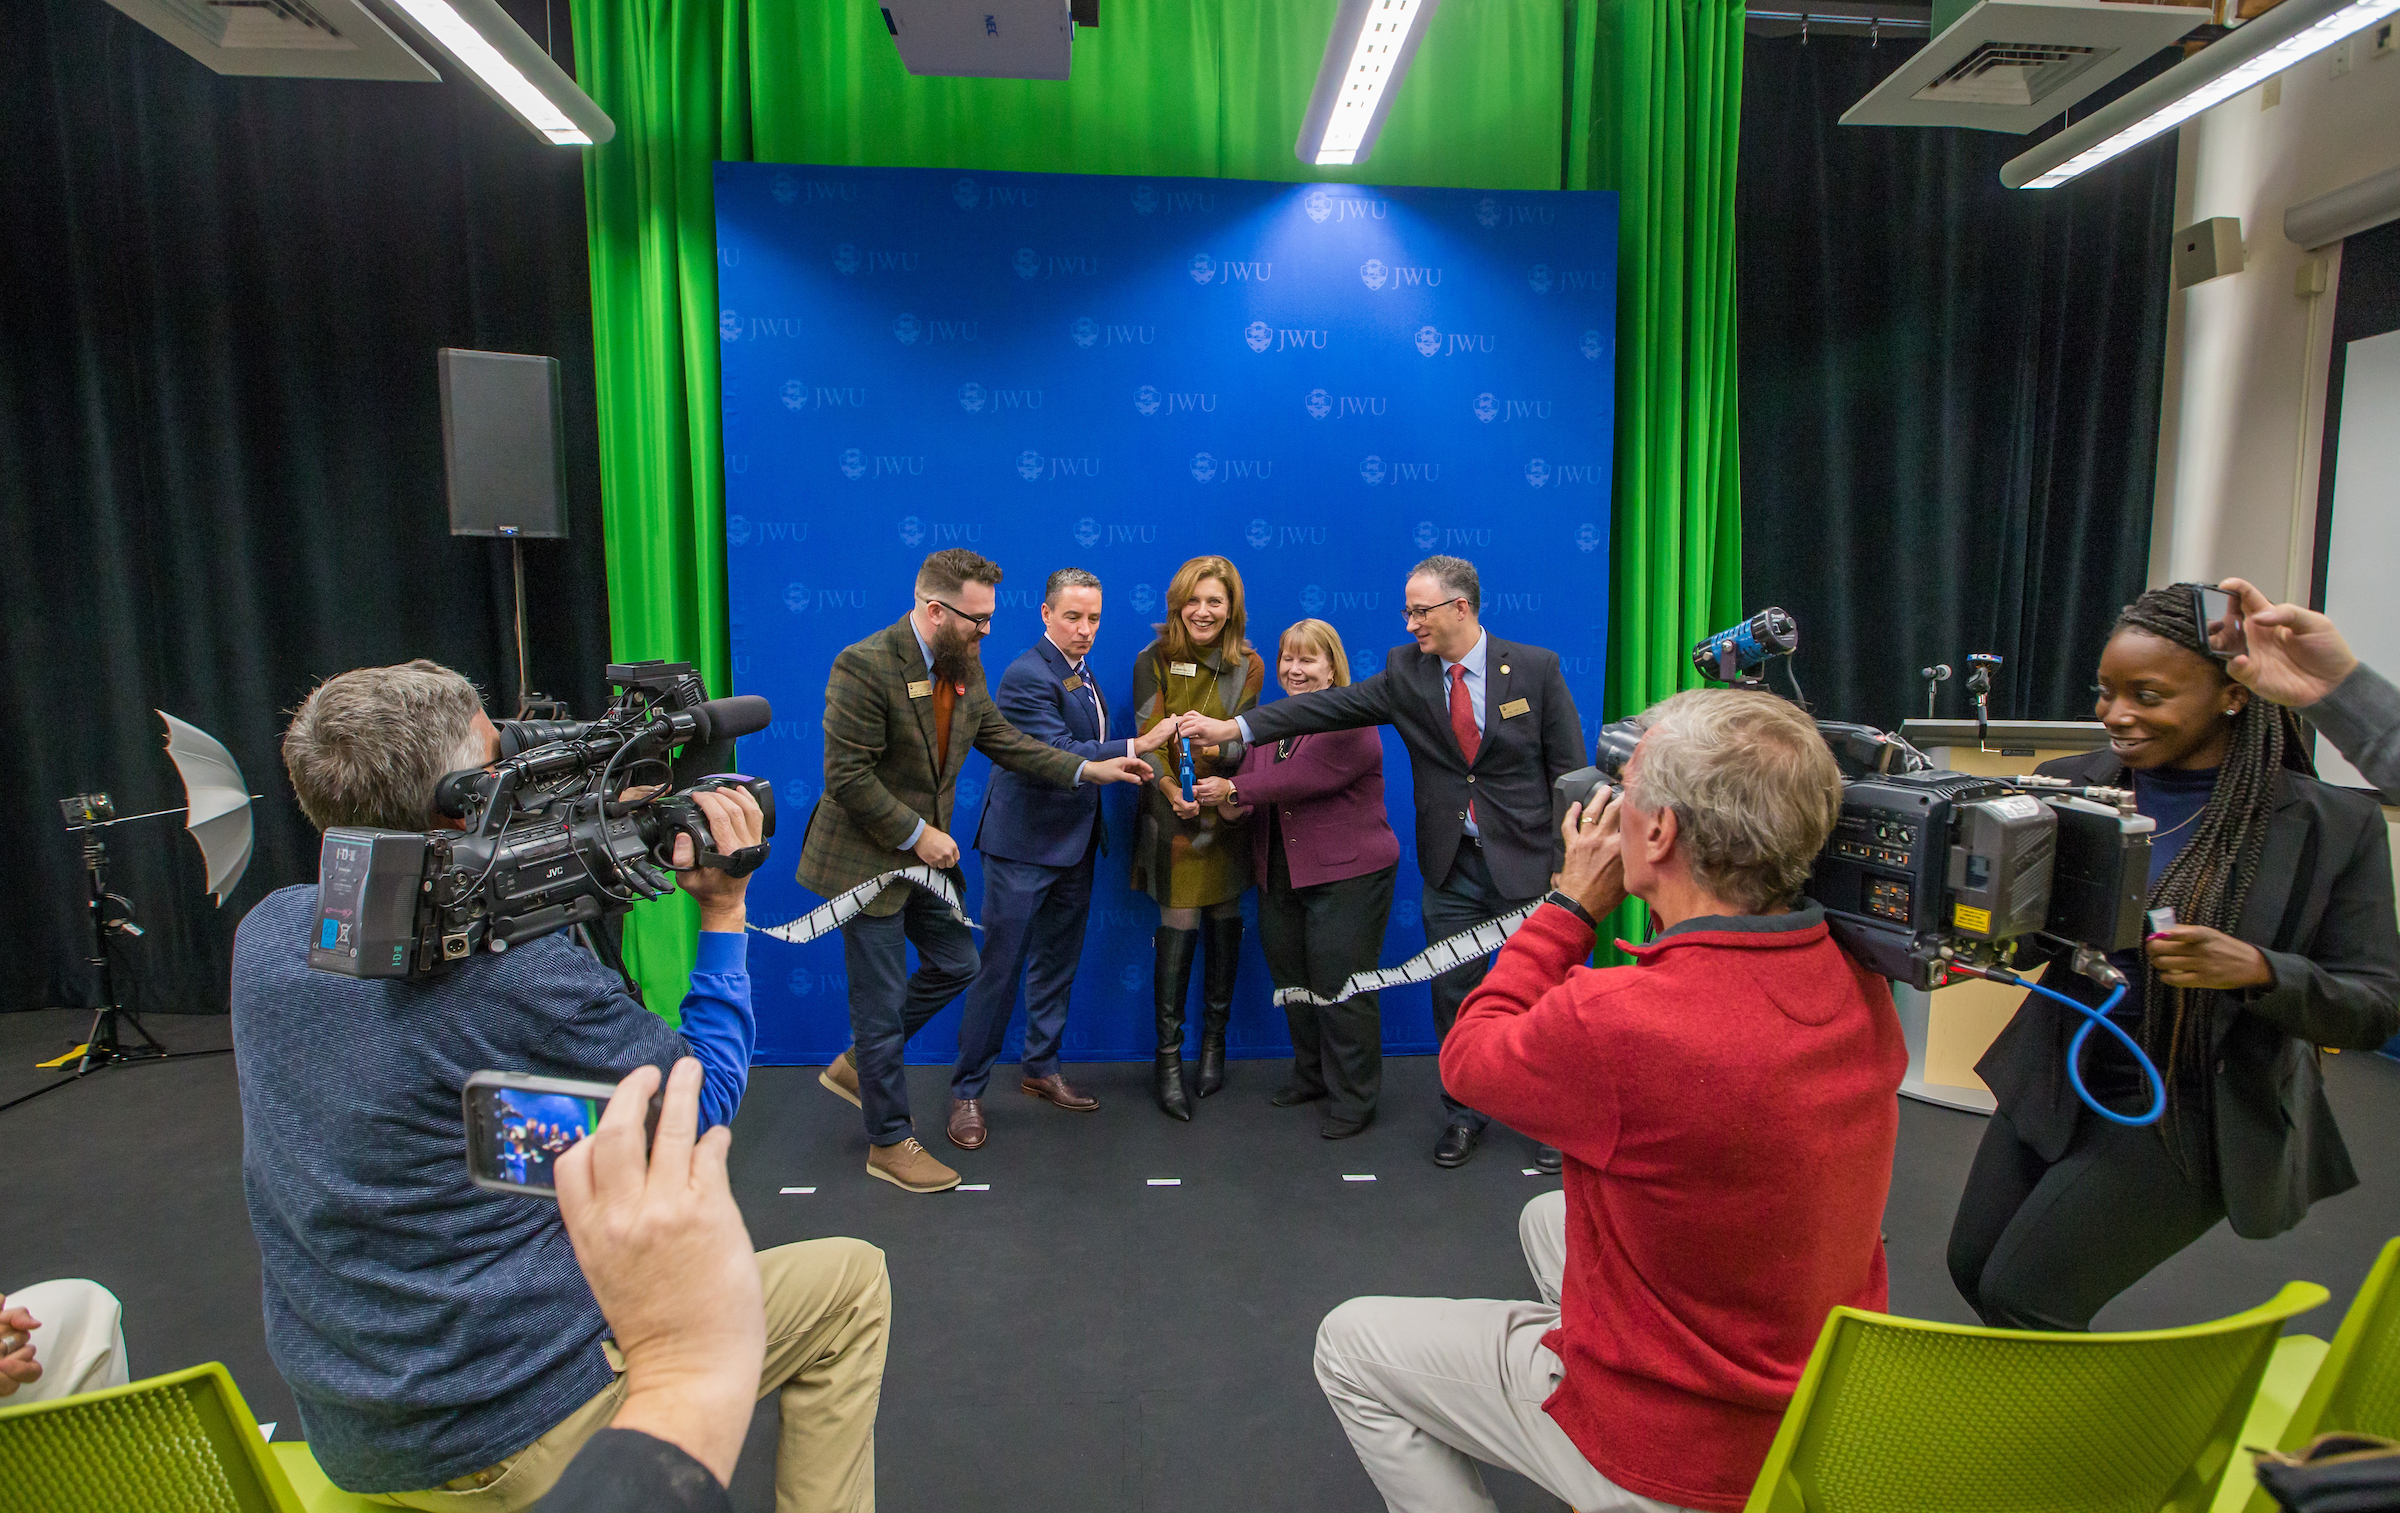 20191004_CenterForMediaProduction-Opening-C83T1317.jpg